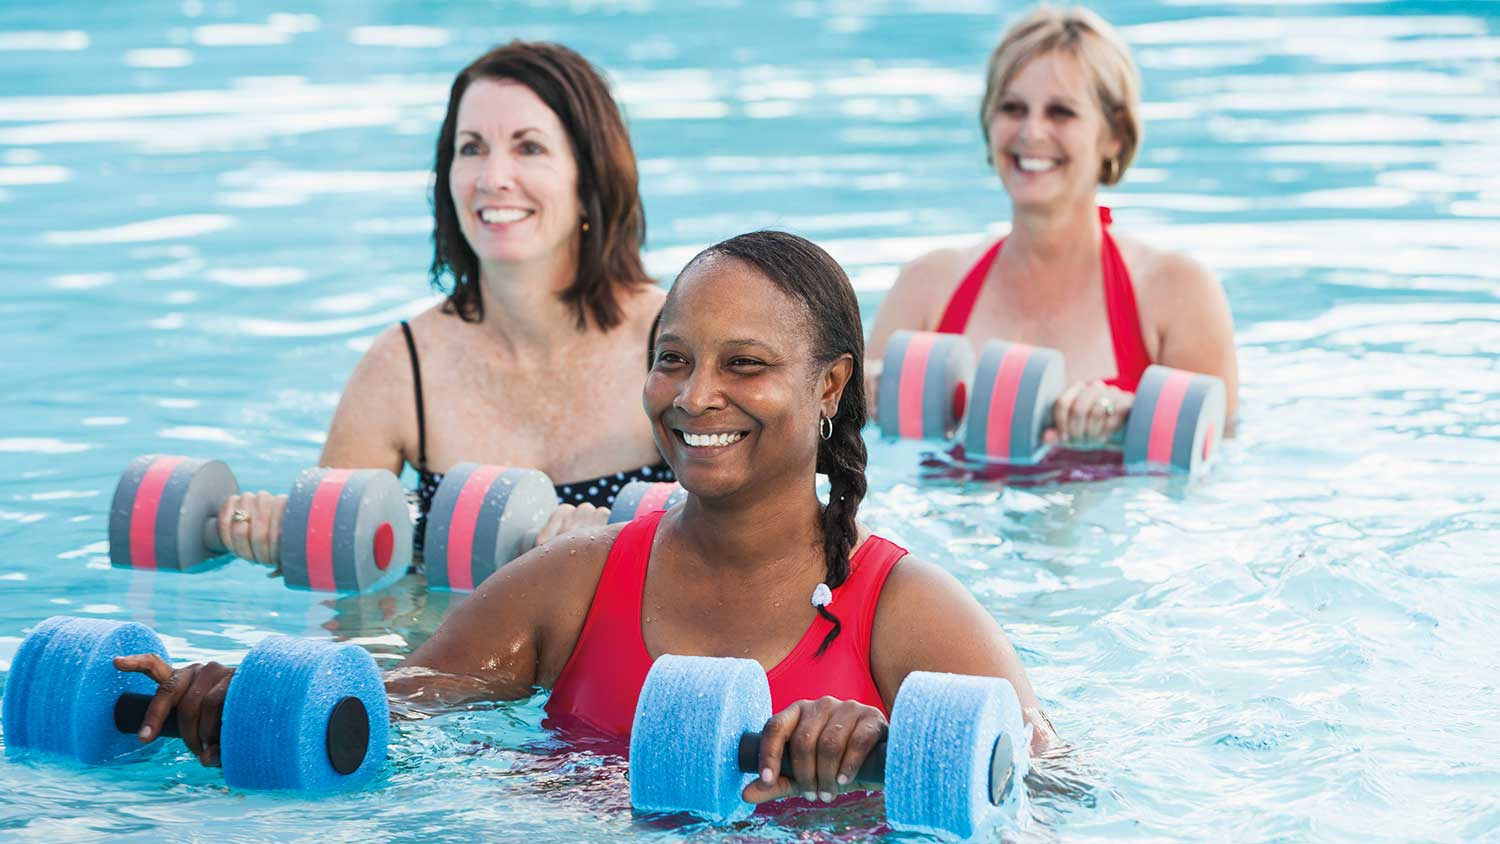 Three women looking at an instructor whilst standing in the water ready for an exercise class. They are holding water weights.